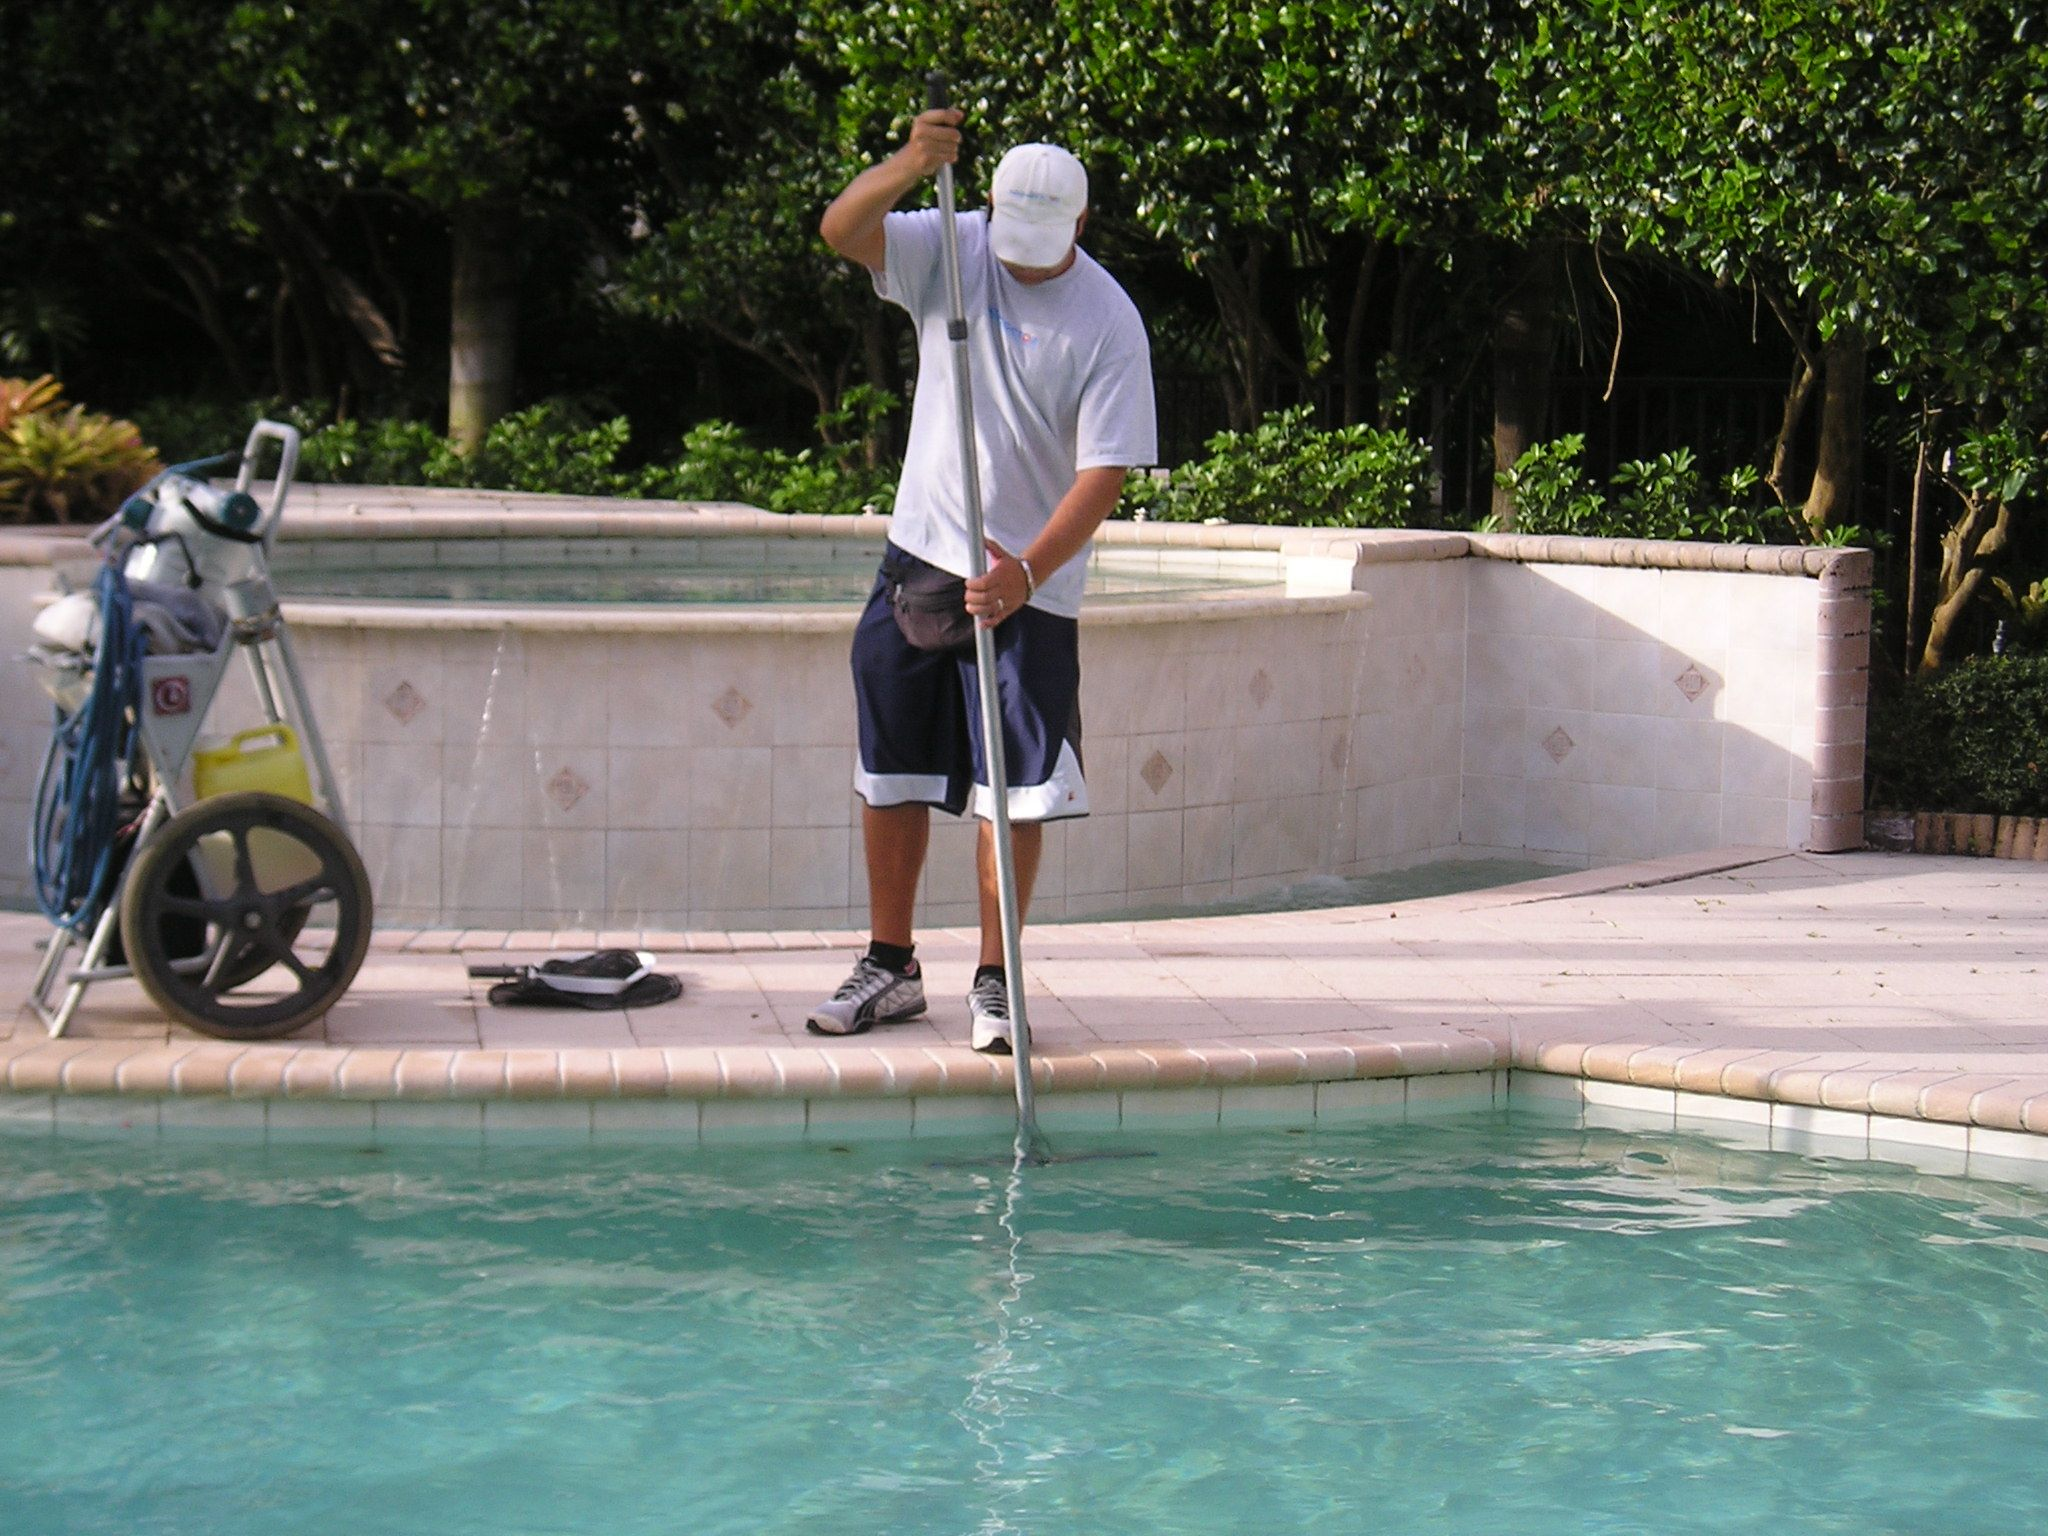 Poolsdxb Swimming Pool Services Is A Full Service